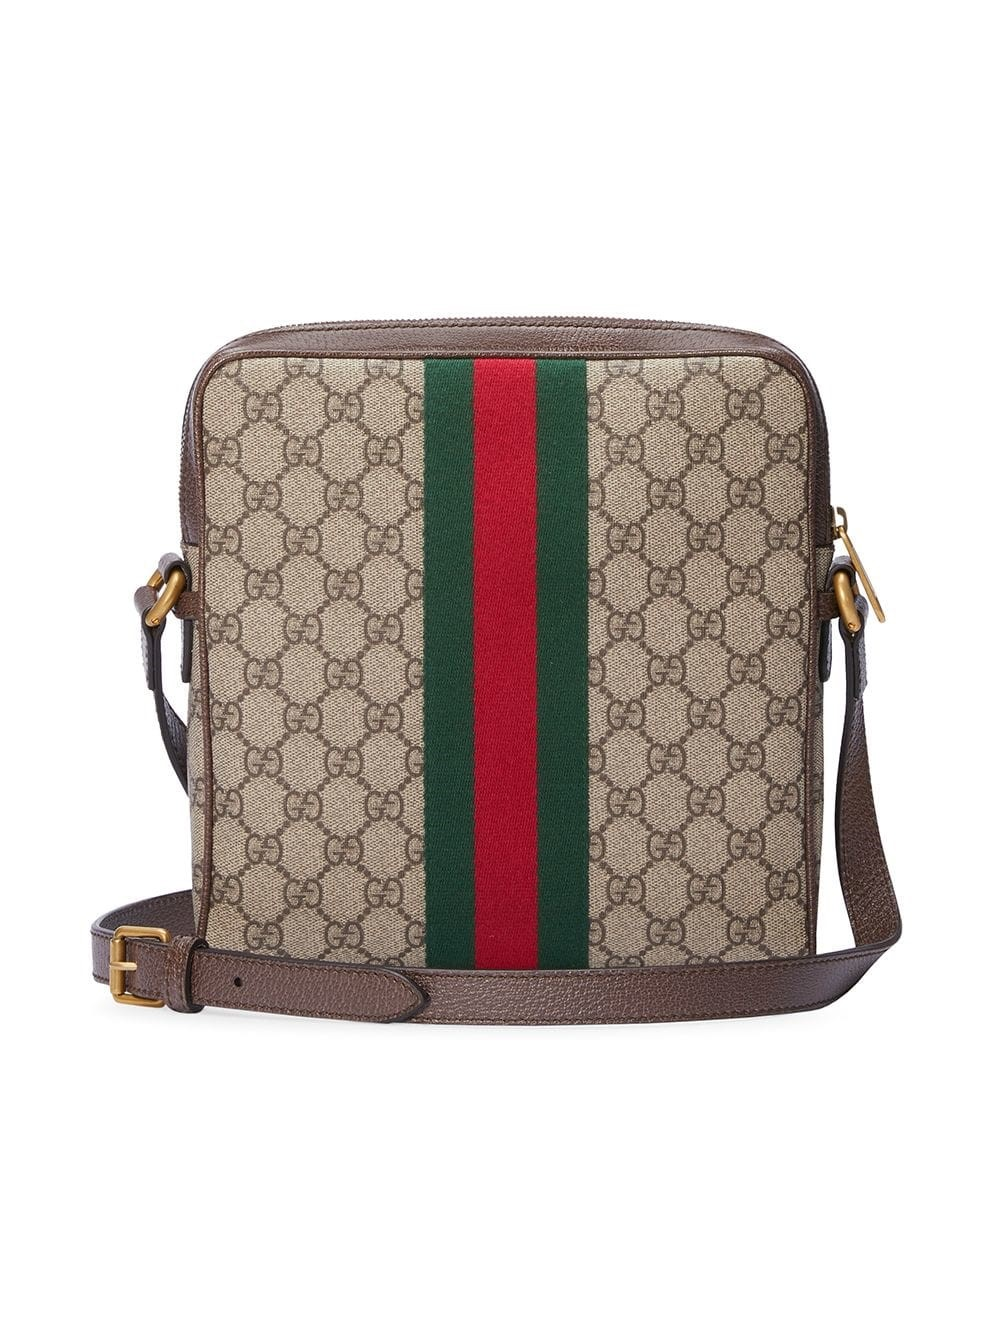 0b80f06868d3e8 gucci GG PRINT CROSS BODY BAG available on montiboutique.com - 26179